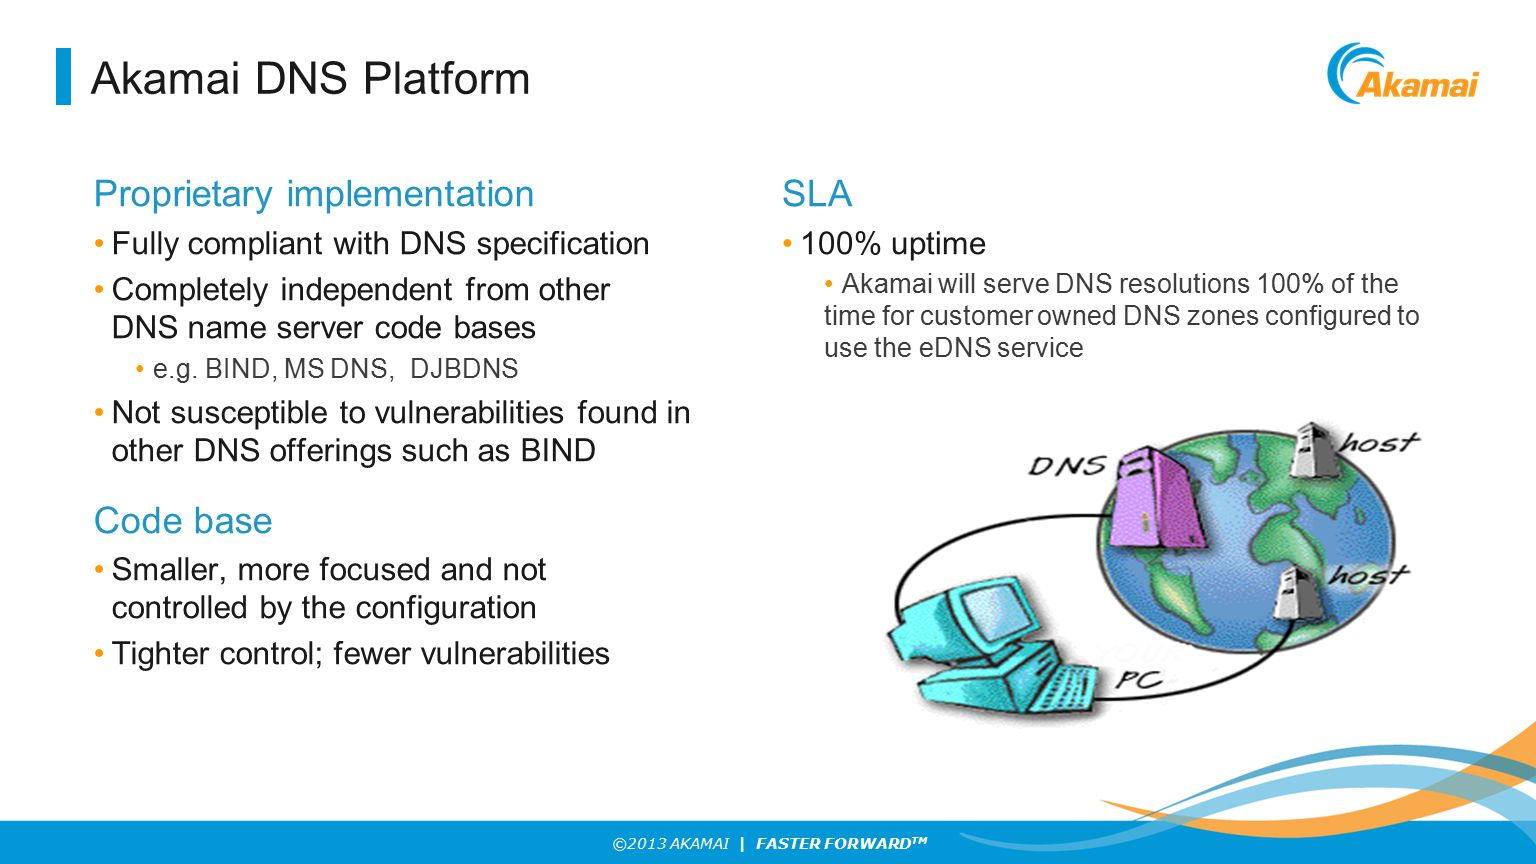 ©2013 AKAMAI | FASTER FORWARD TM Akamai DNS Platform Proprietary implementation Fully compliant with DNS specification Completely independent from other DNS name server code bases e.g.